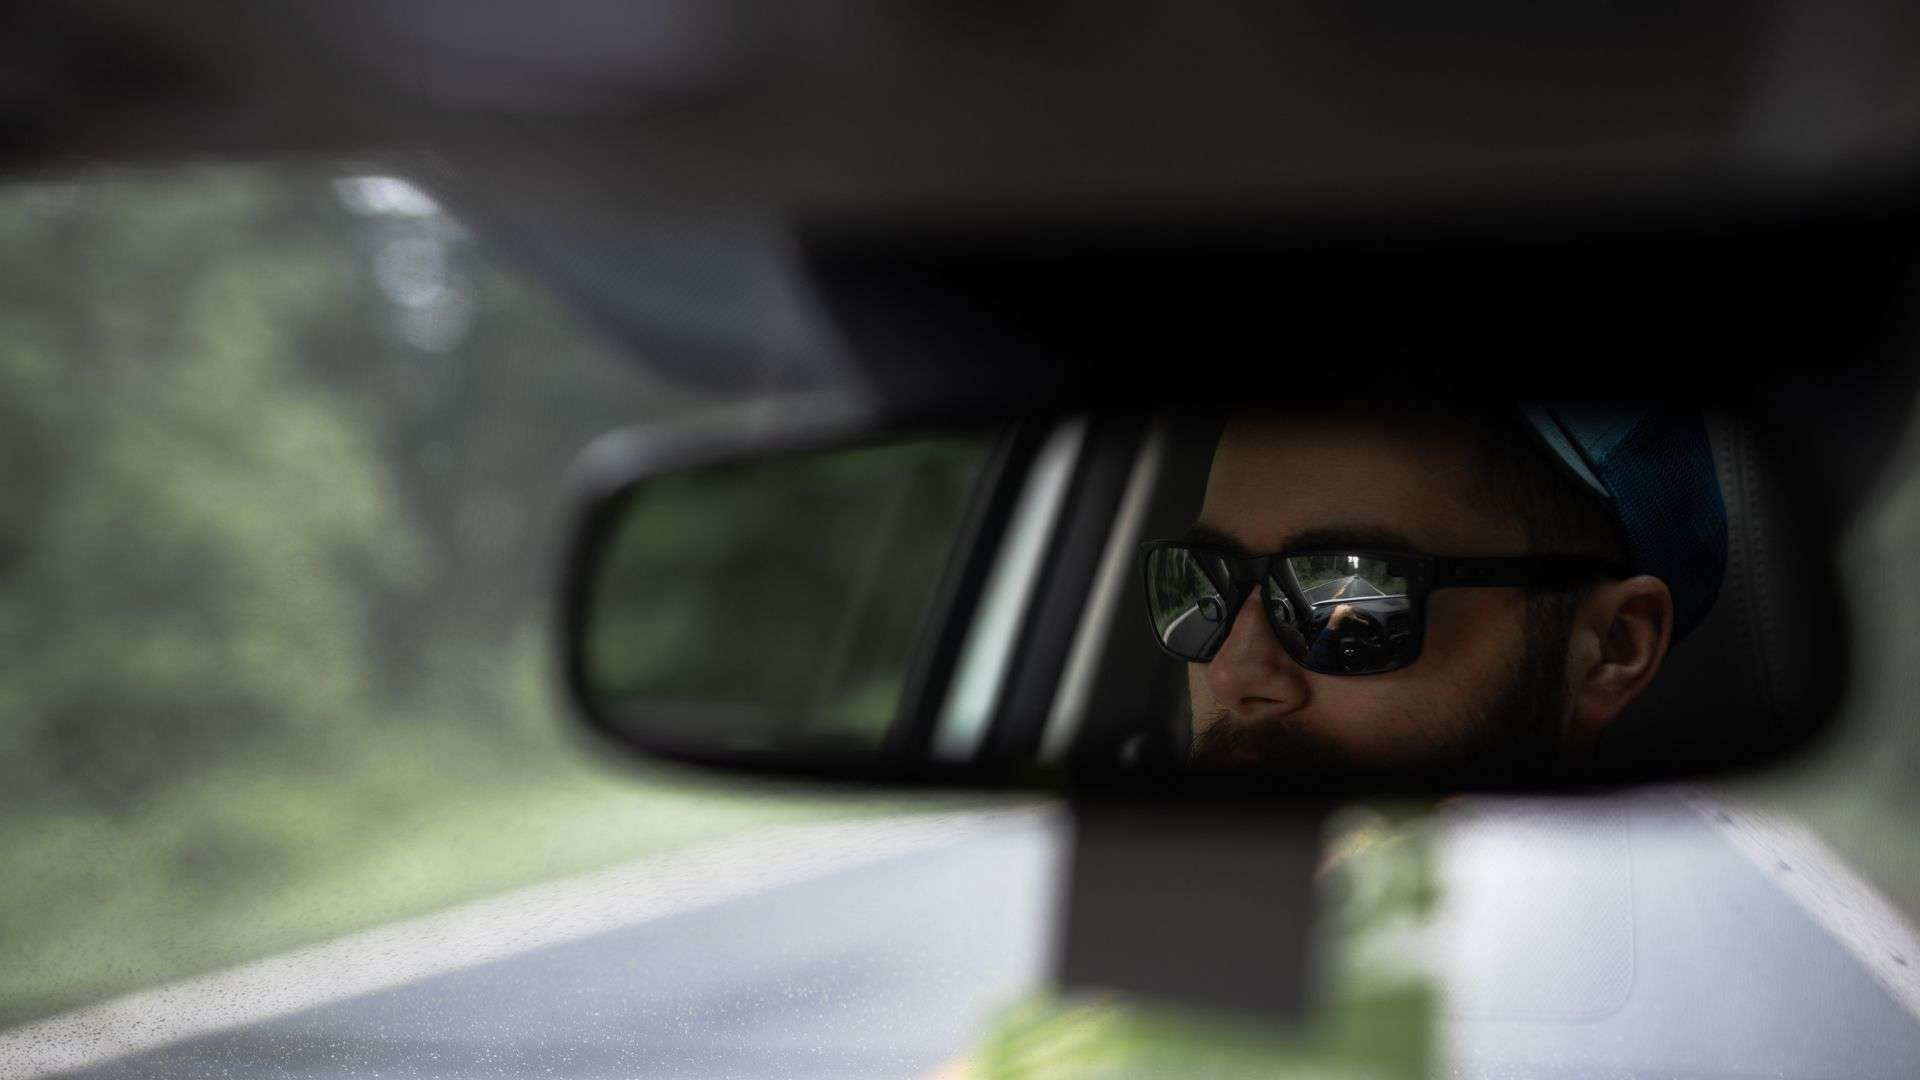 Is it illegal to hang things from the rearview mirror in Autralia?